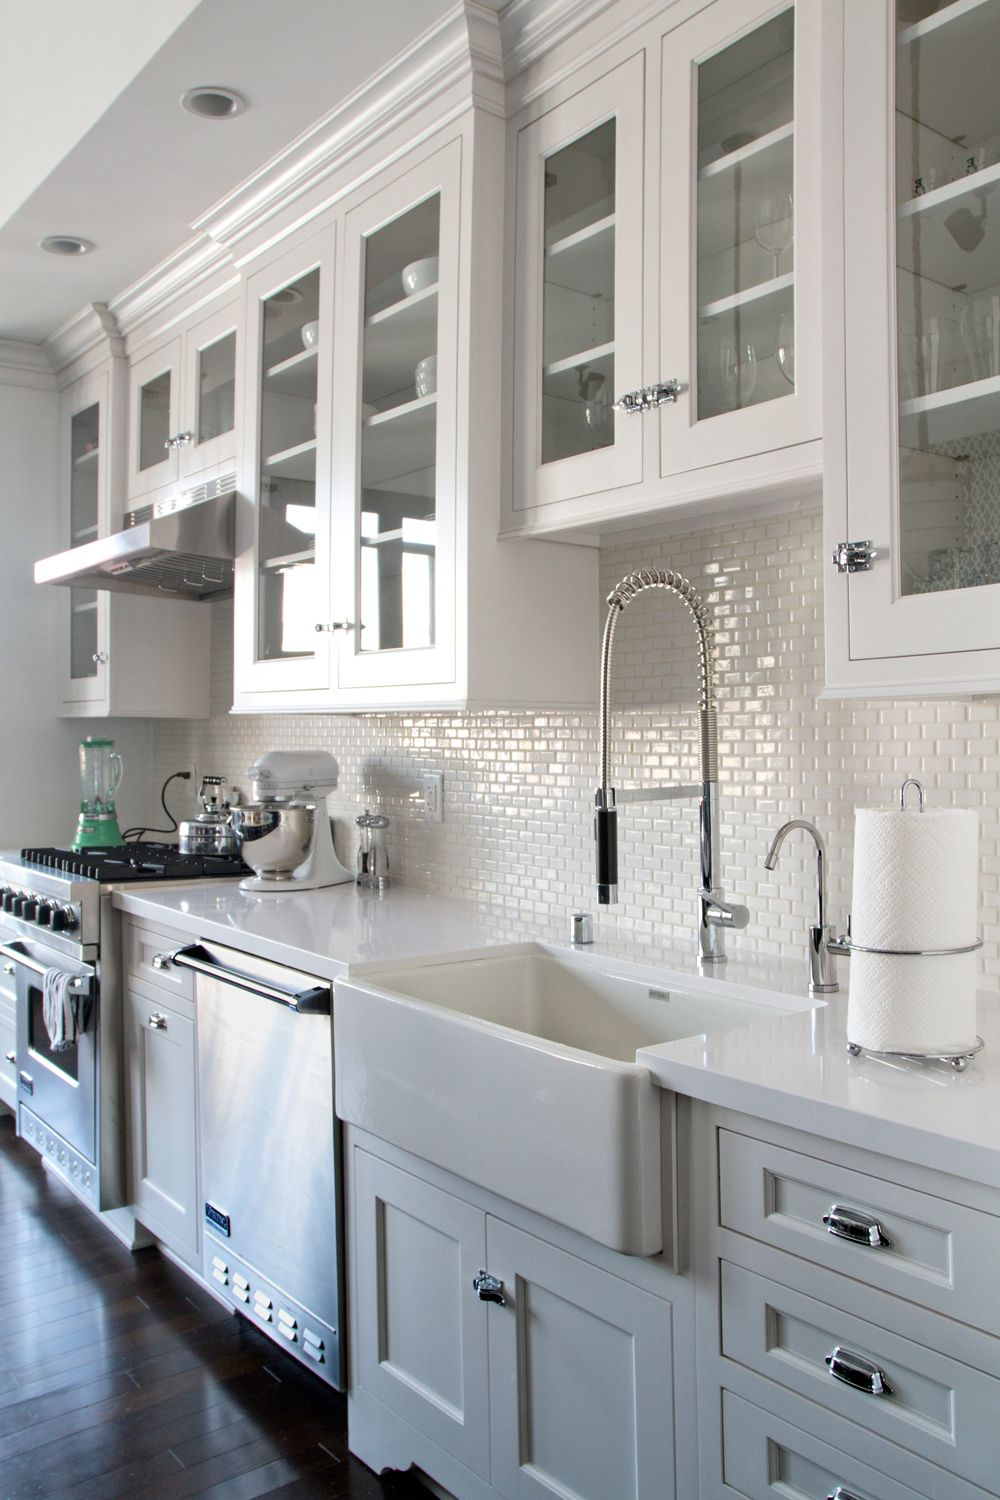 Mini Subway White Kitchen Farmhouse Sink Hardware Kitchens